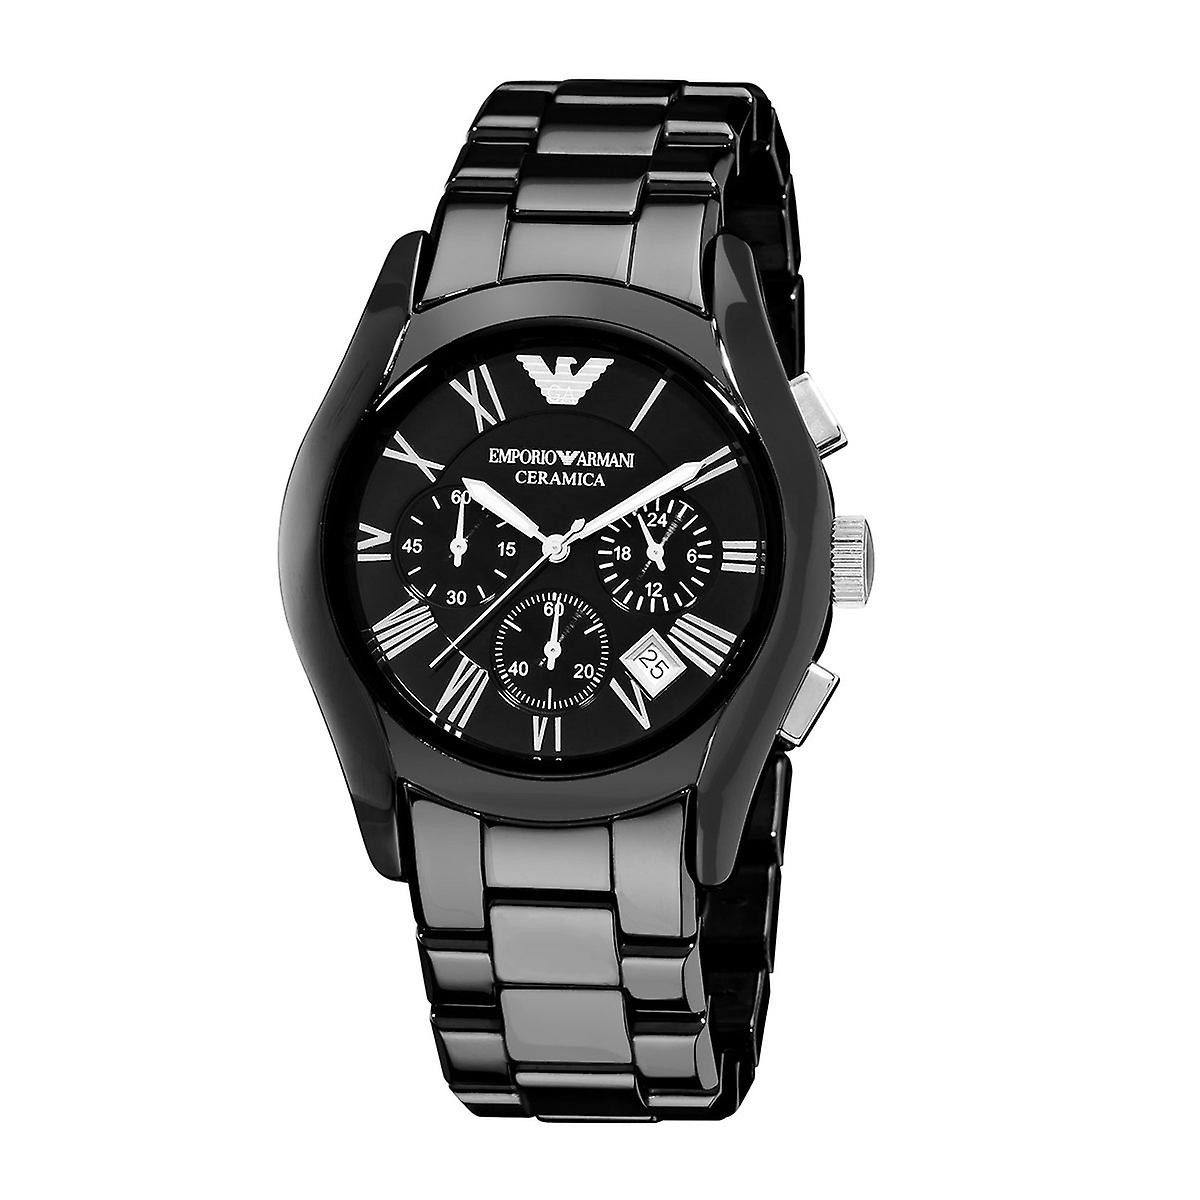 Emporio Armani Ceramic AR1400 Men's Chronograph Watch